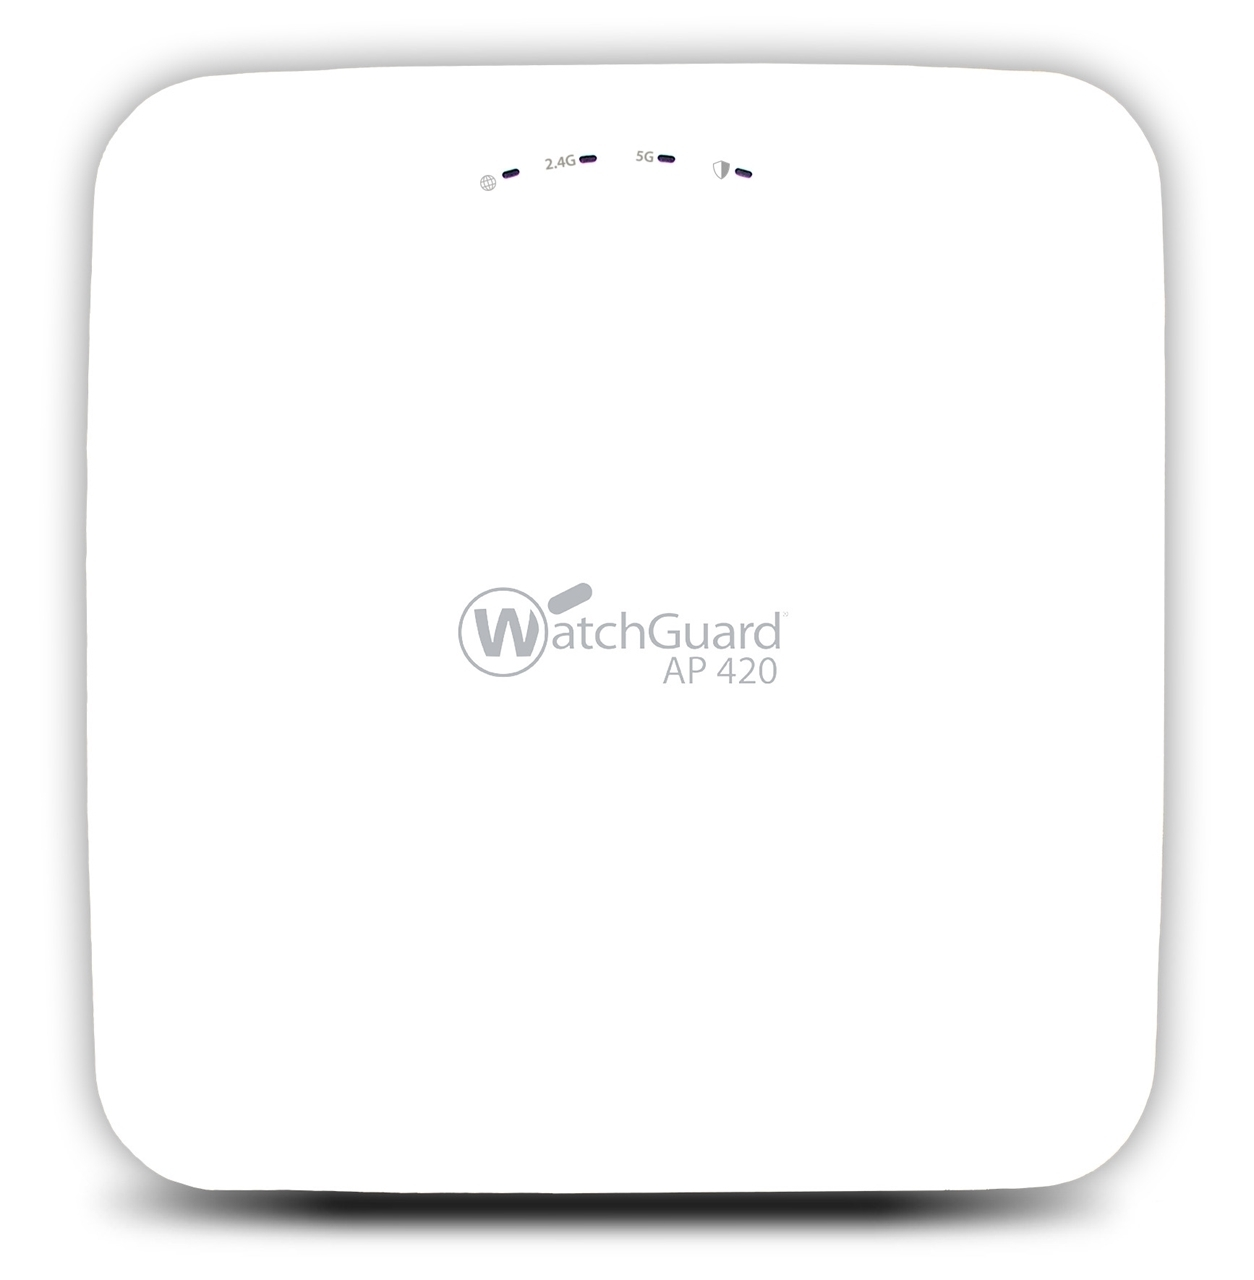 Picture of Trade In to WatchGuard AP420 and 3-yr Total Wi-Fi